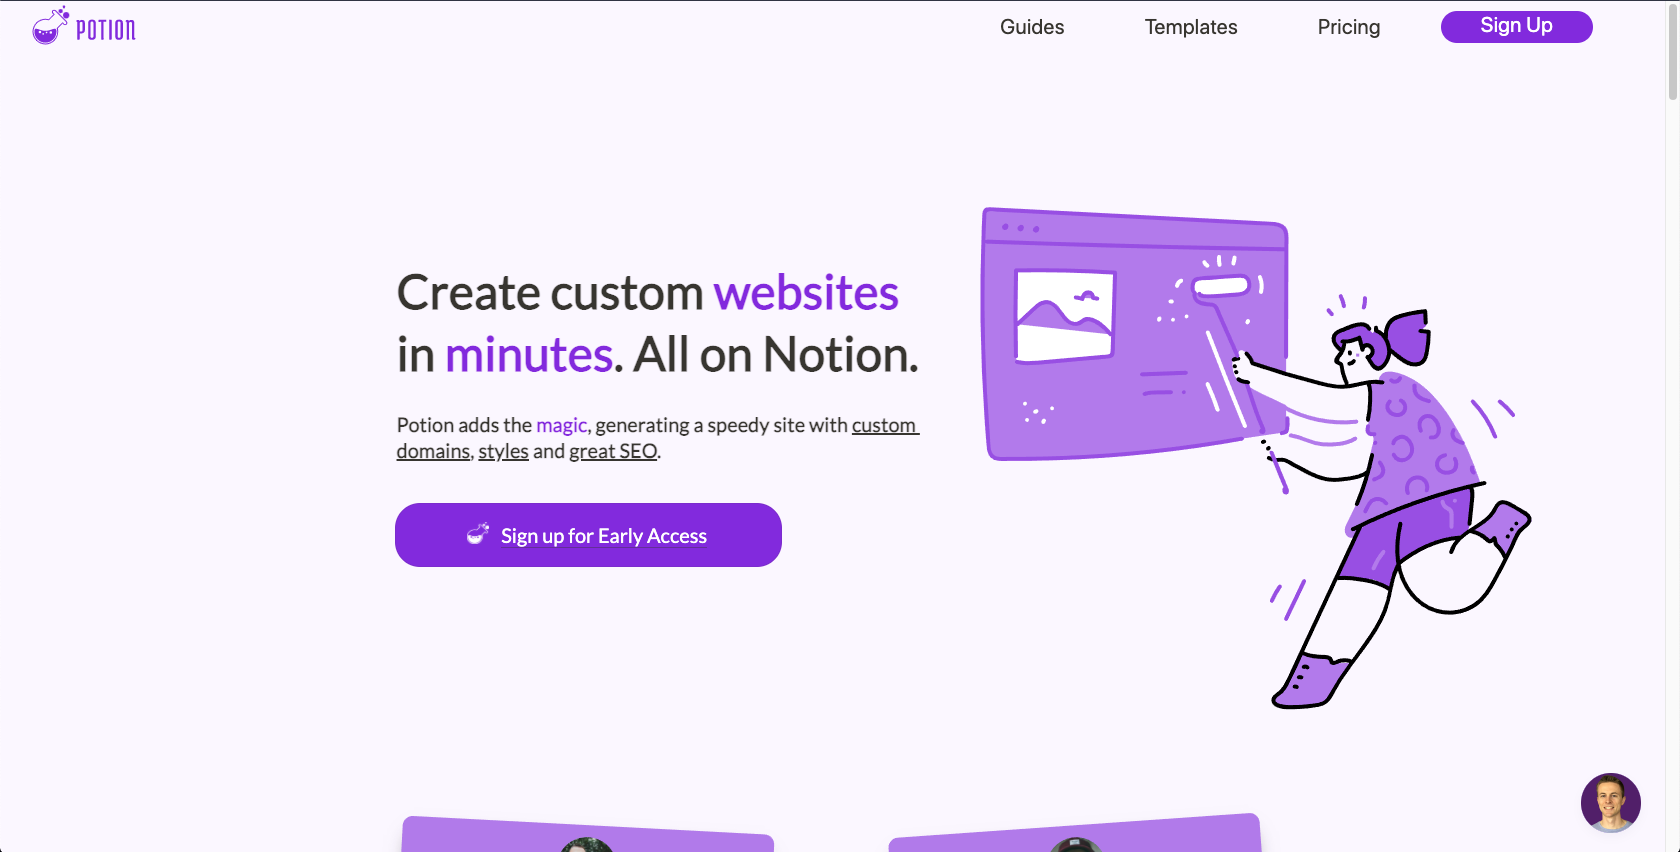 How I created my landing page with Notion